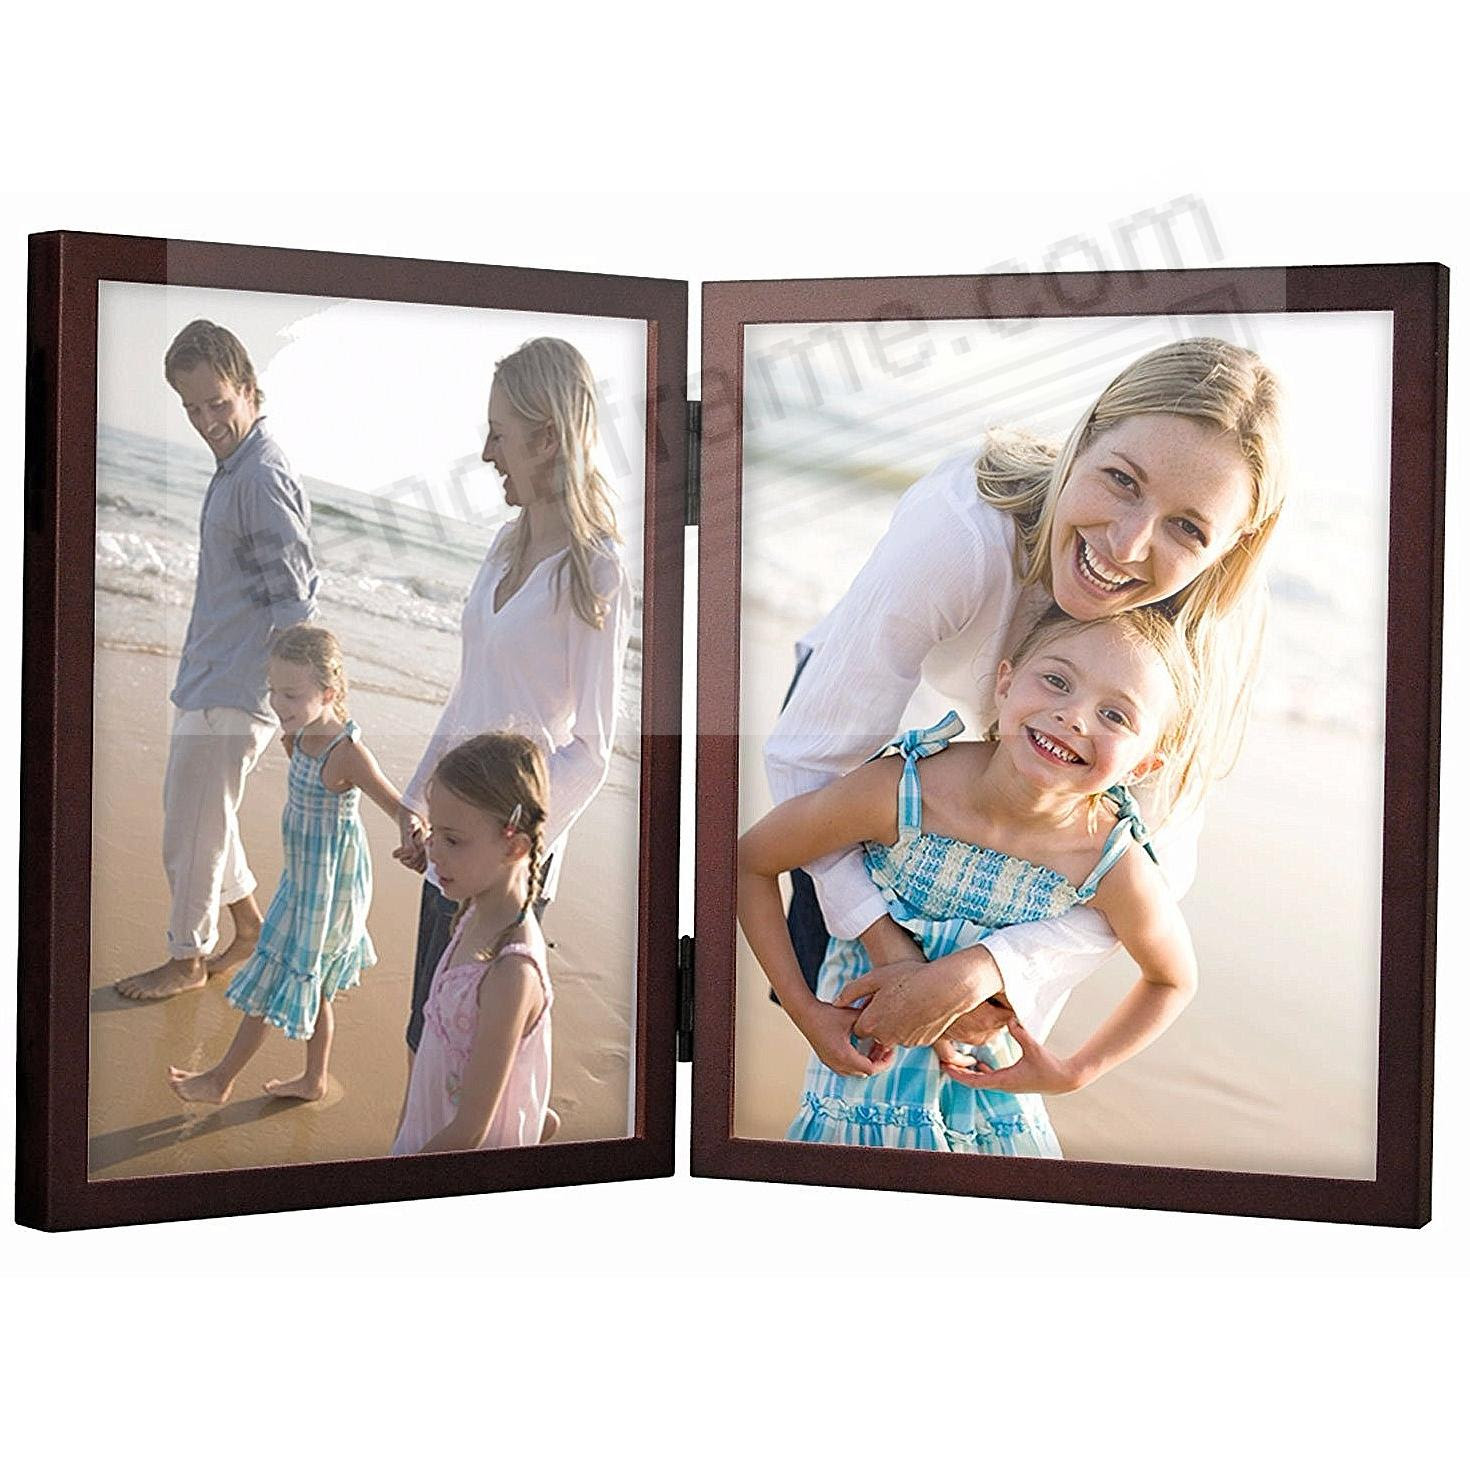 Double Hinged Walnut Concepts Wood 8x10 Frame By Malden Picture